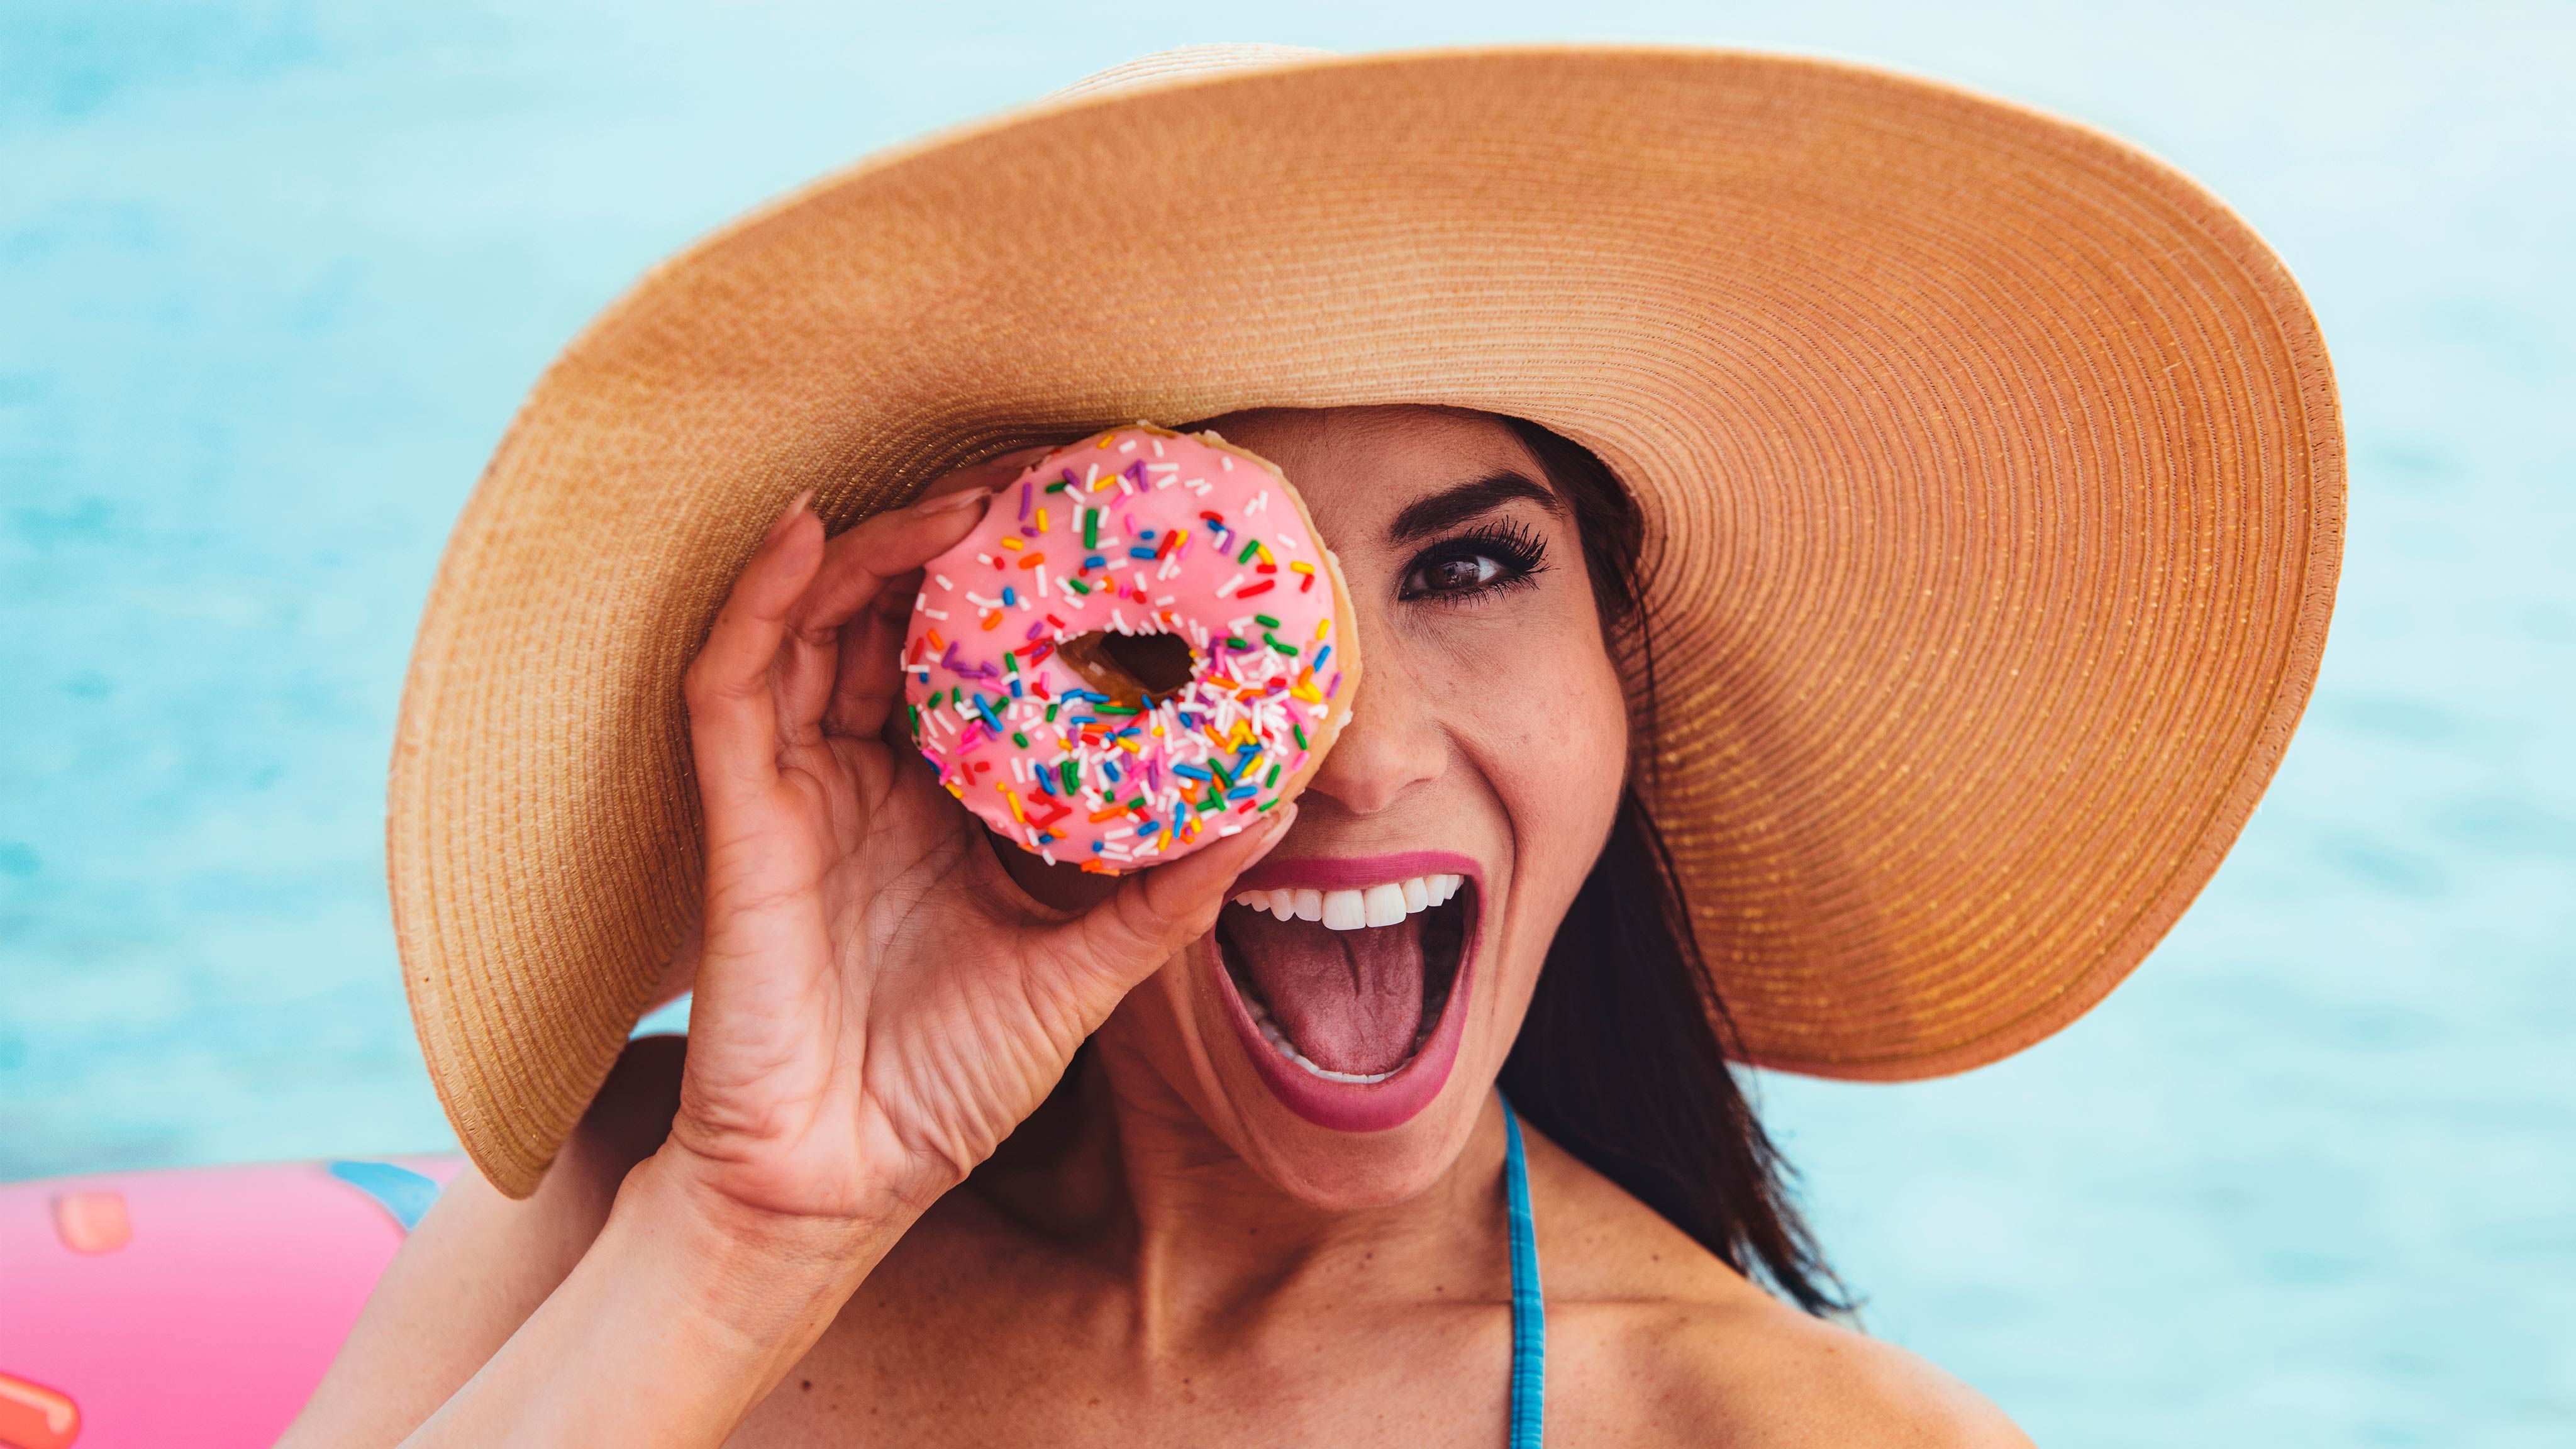 Woman smiling while holding a donut